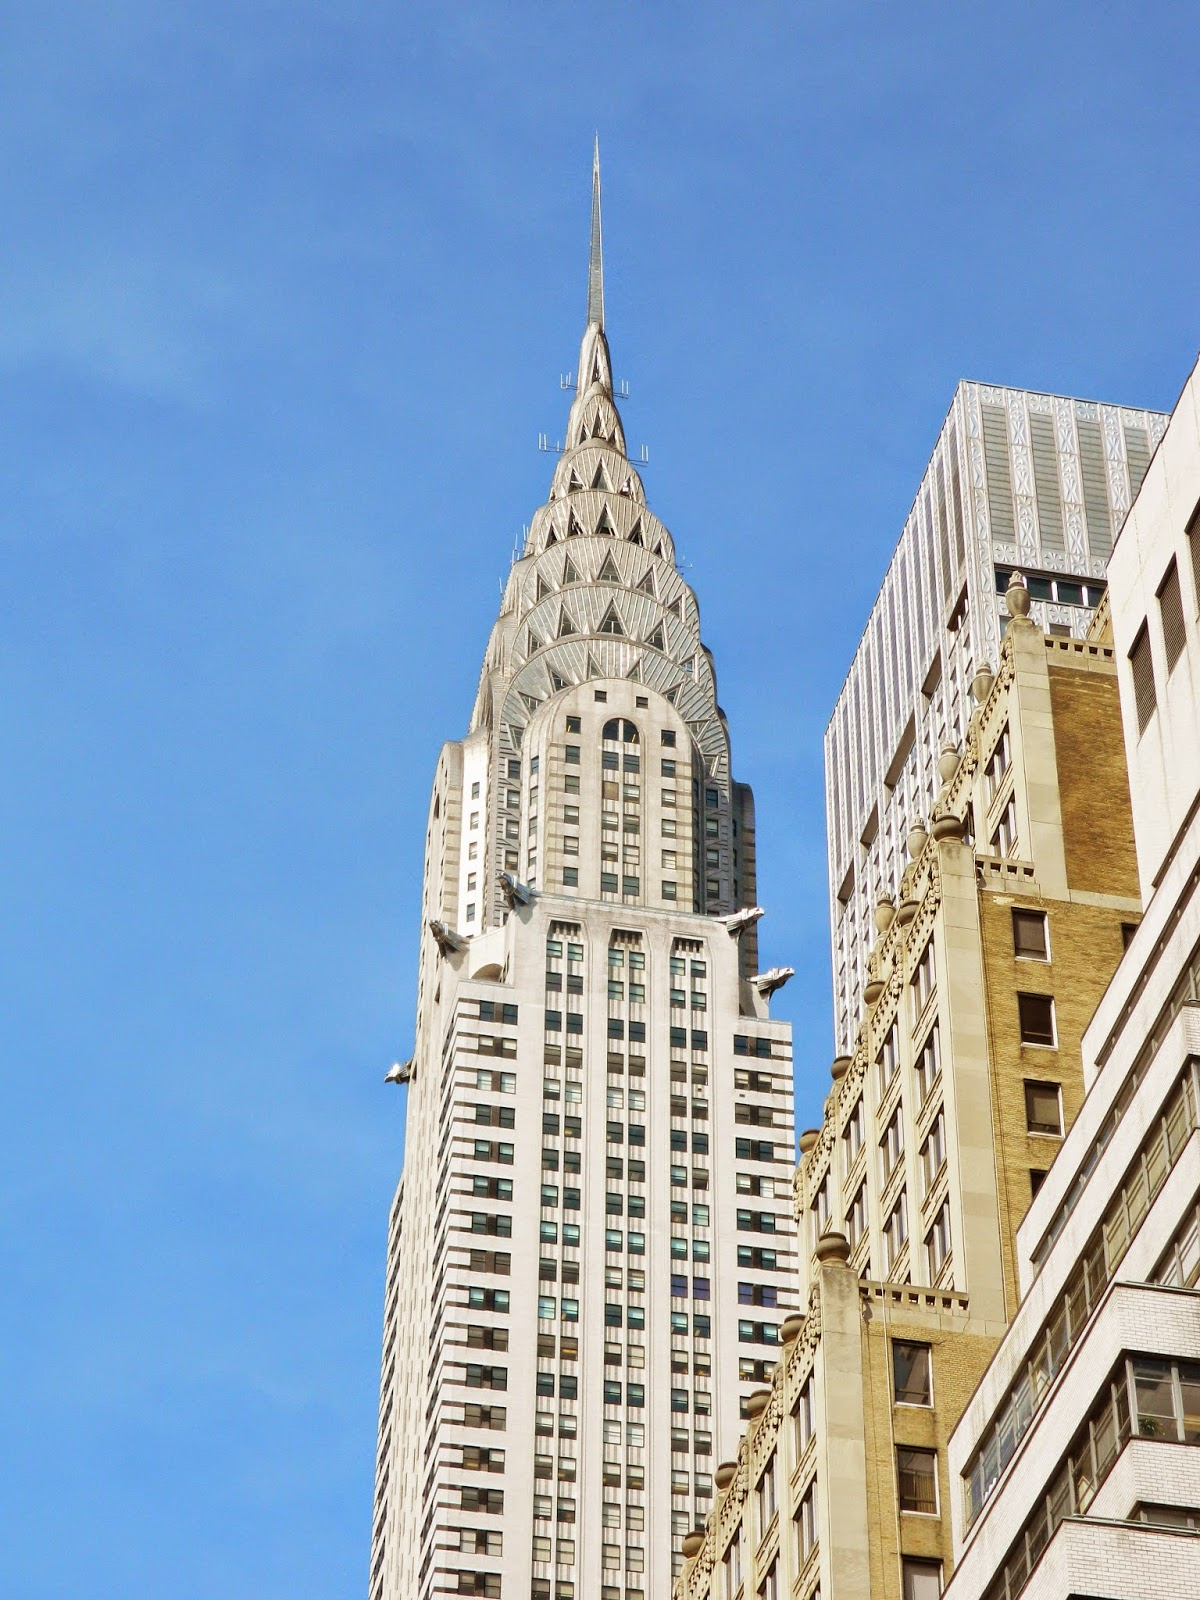 new york city Chrysler building sunlight pretty art deco